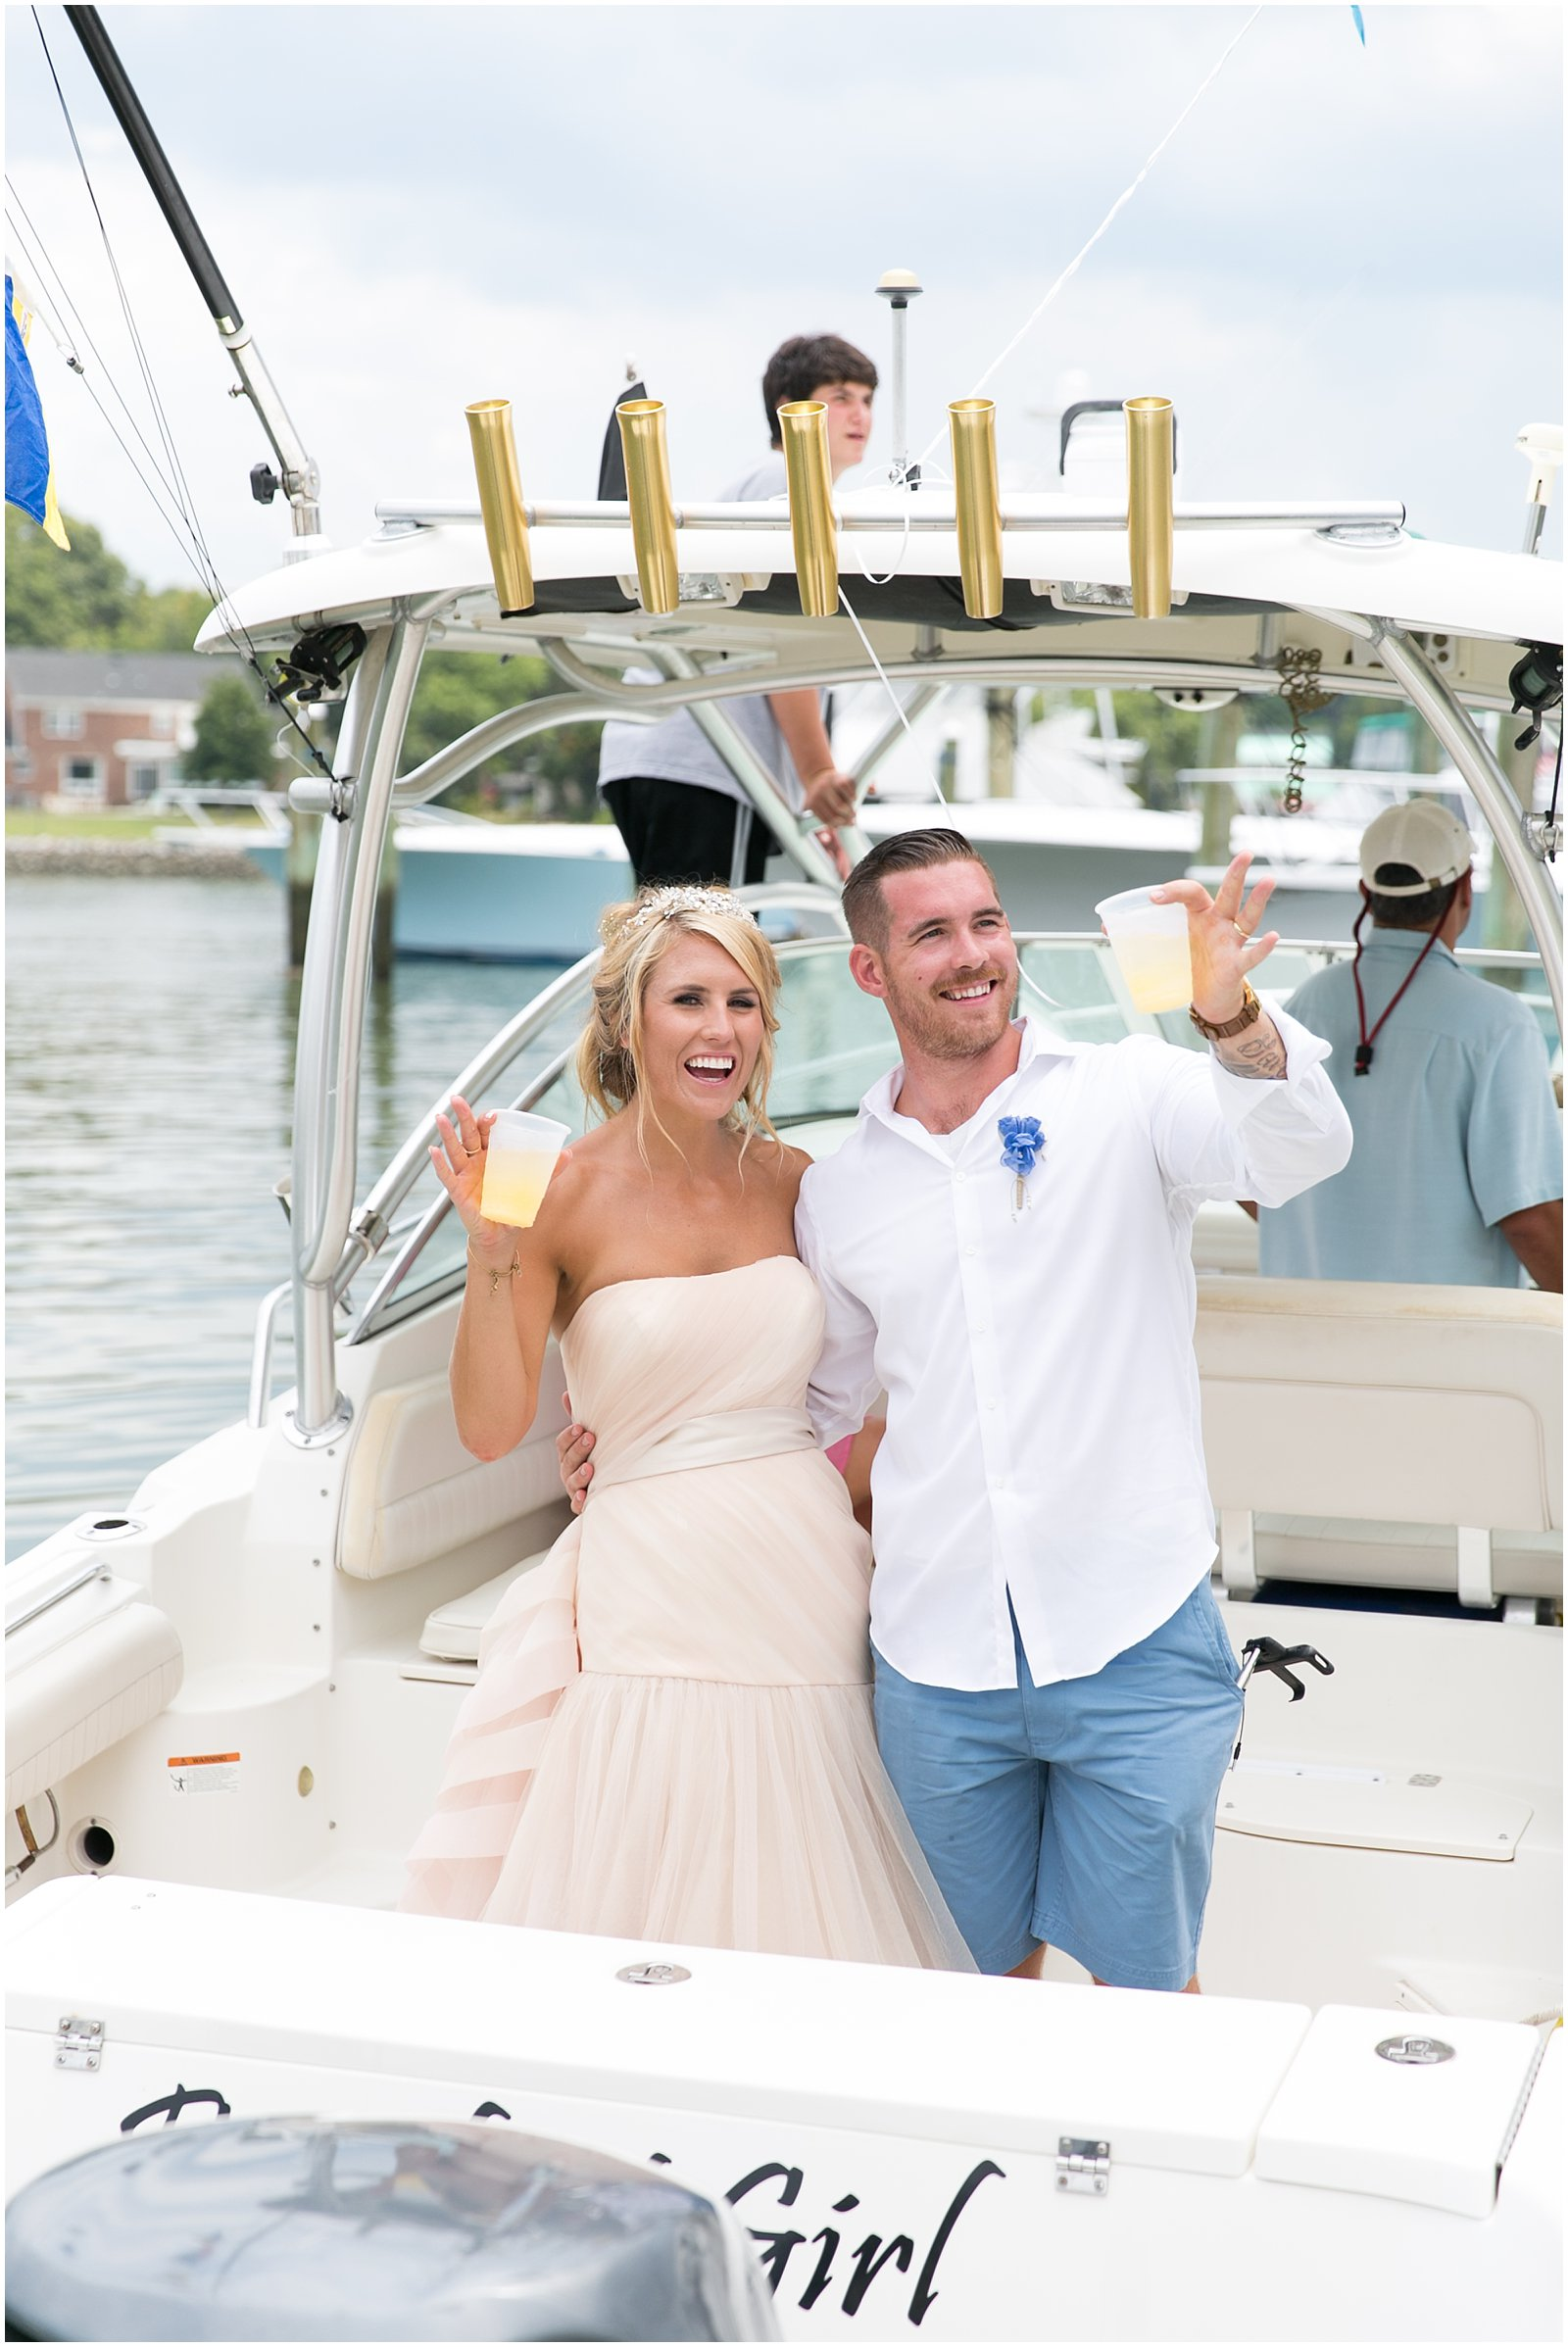 jessica_ryan_photography_wedding_virginia_beach_virginia_wedding_photographer_candid_wedding_photography_lifestyle_photojournalistic_real_moments_0154